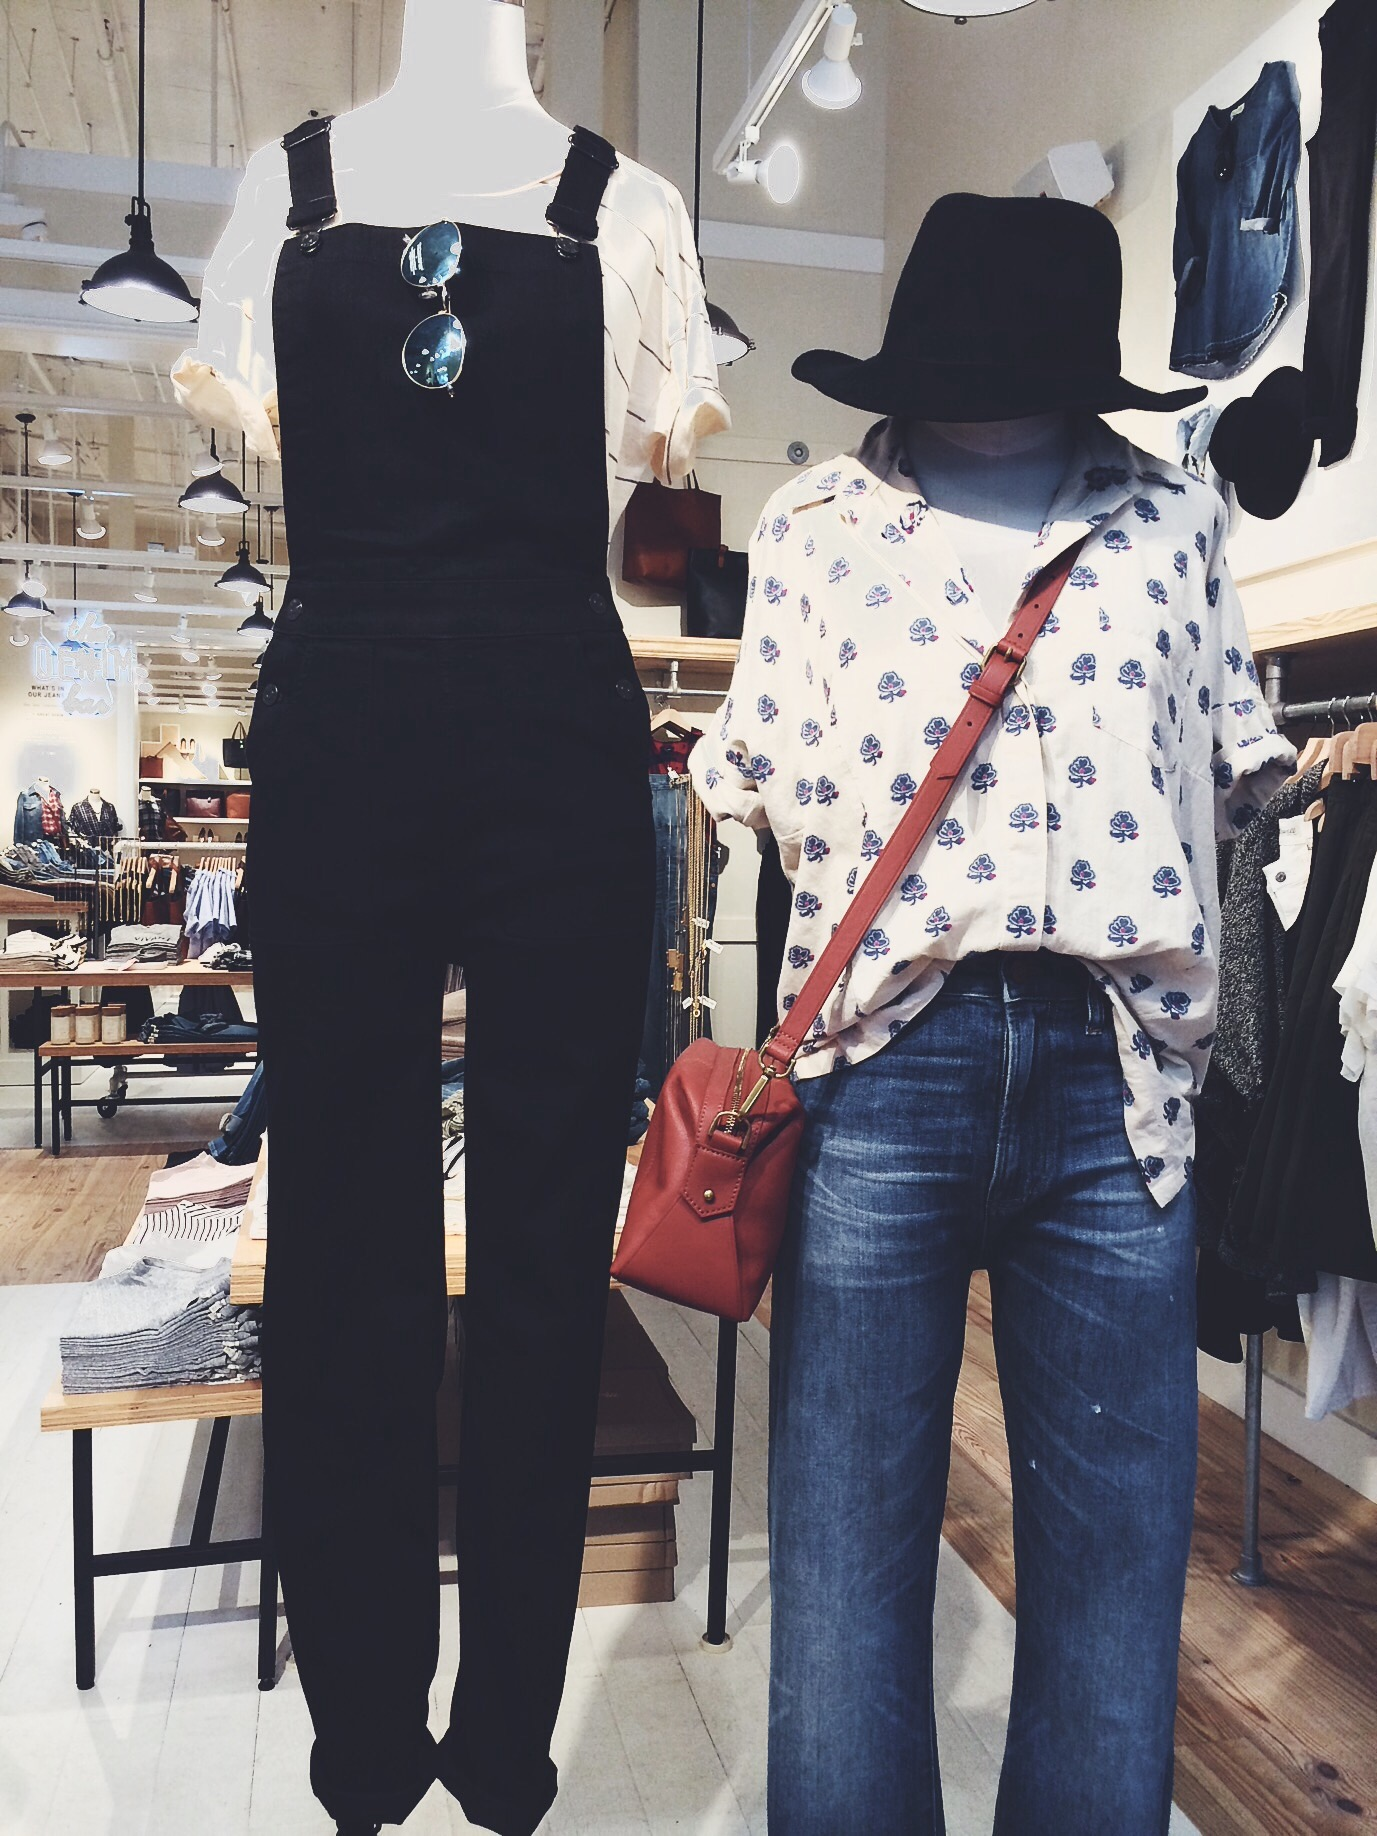 Madewell in Harbor East